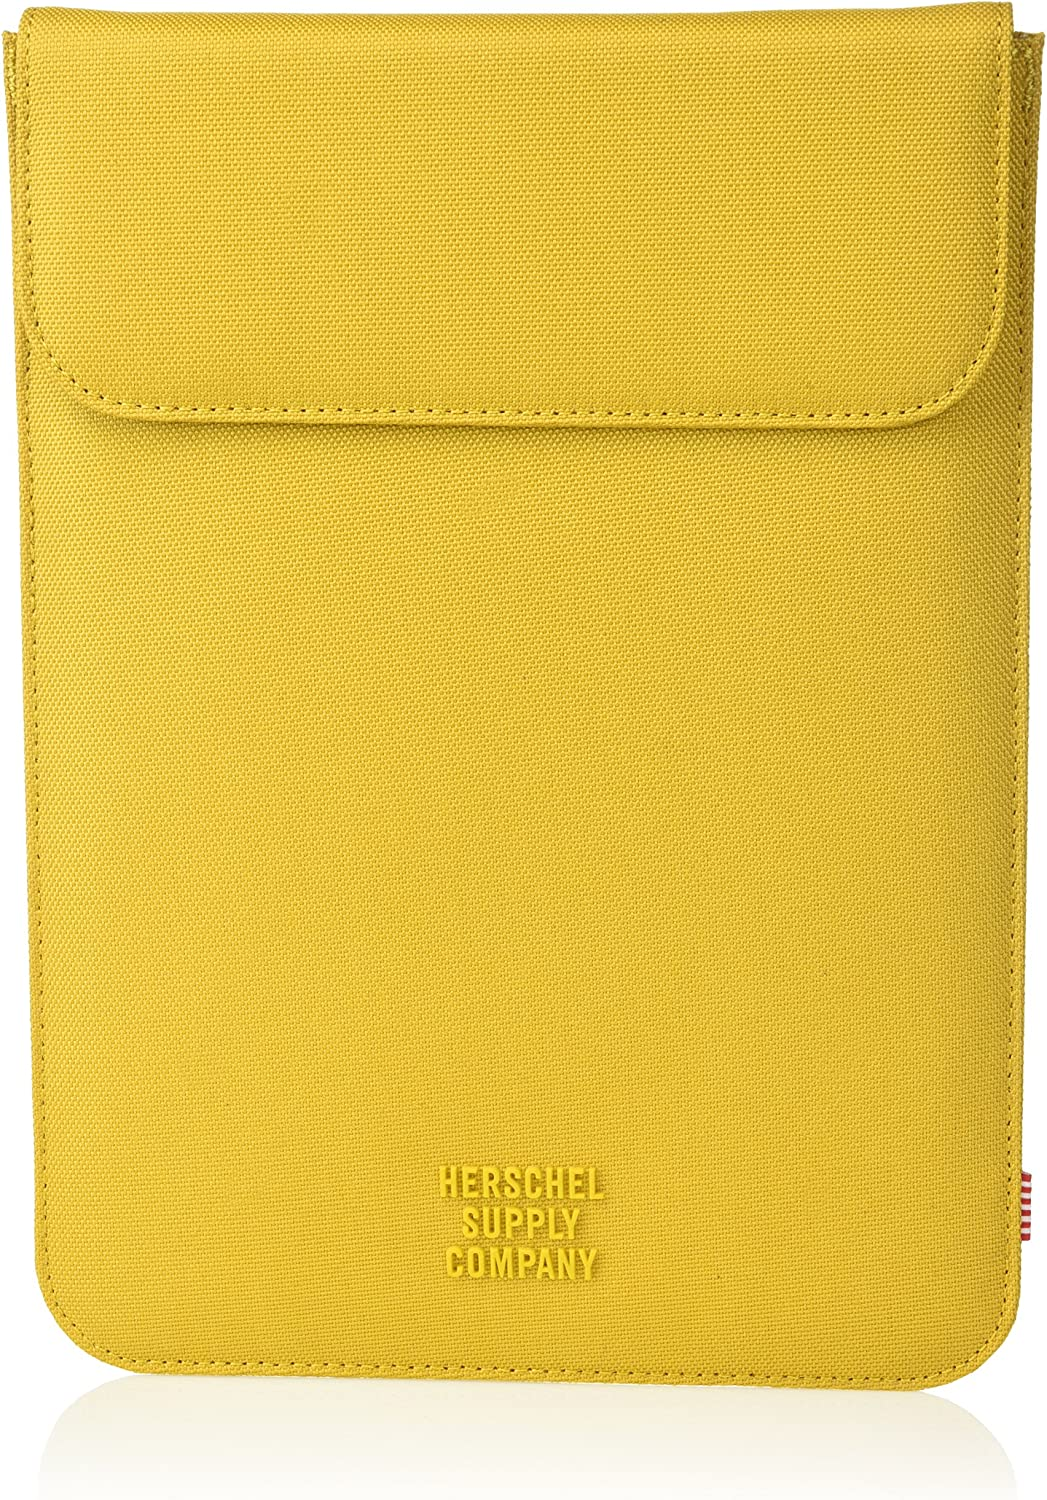 Herschel Spokane Sleeve for MacBook/iPad, Arrowwood, Air